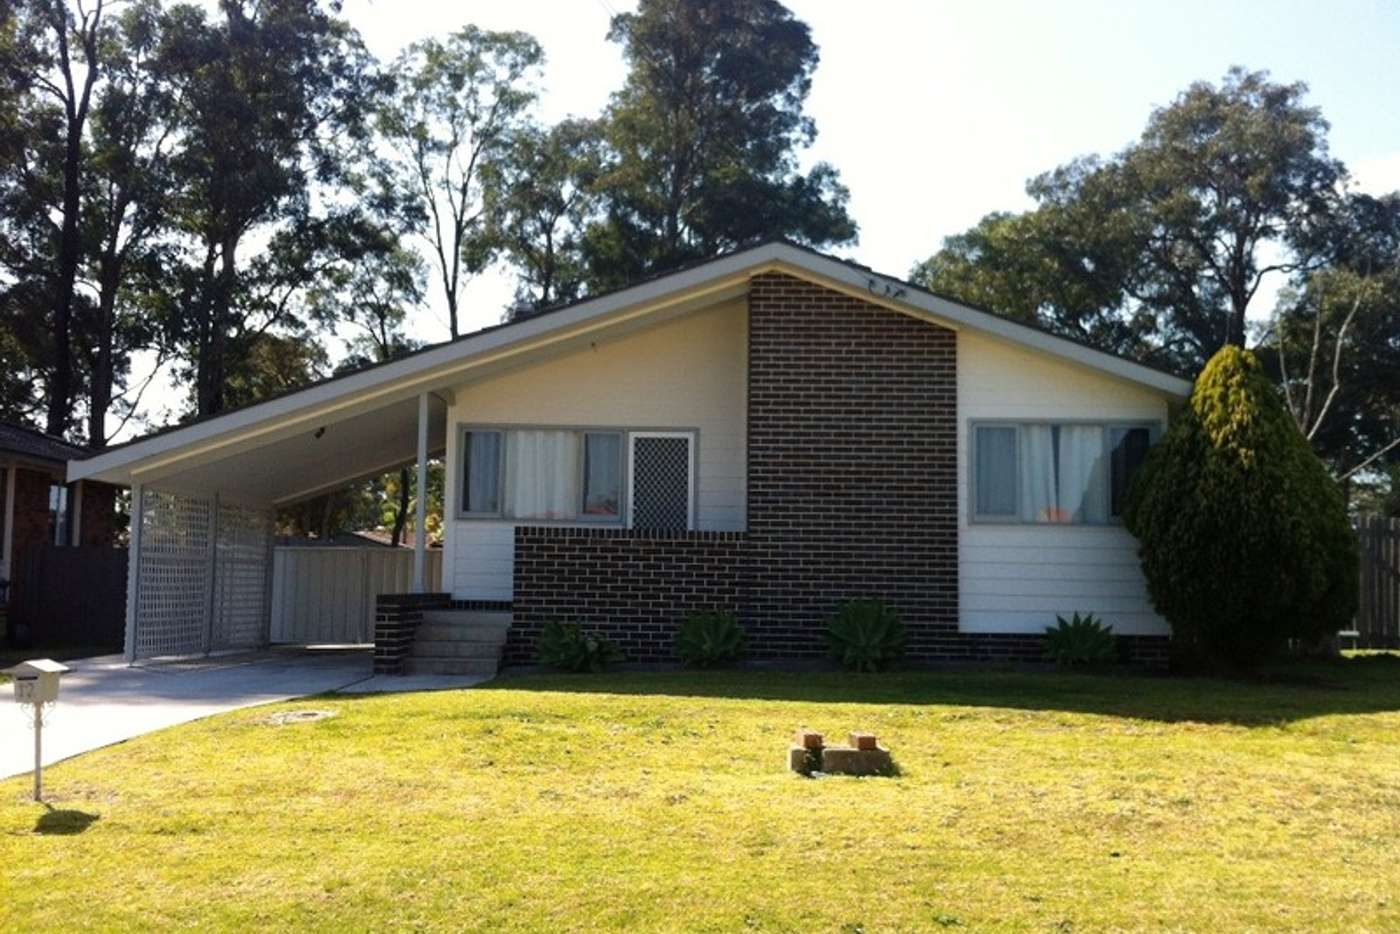 Main view of Homely house listing, 12 Lintina Avenue, Tahmoor NSW 2573